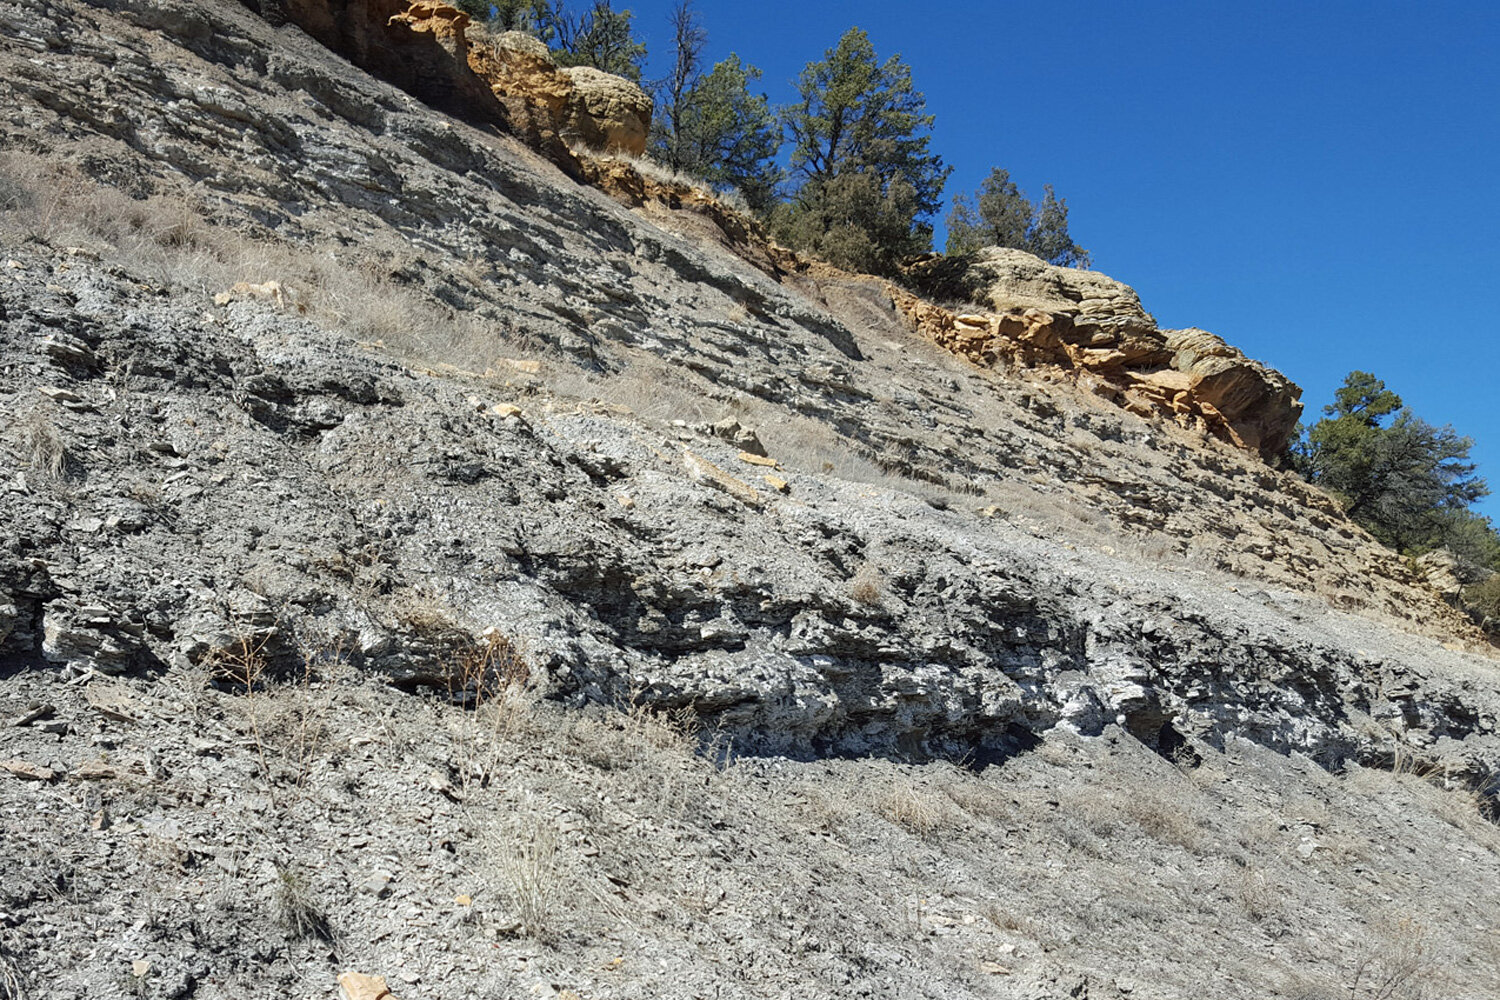 …here's a popular spot in Abiquiu New Mexico where a lot of potters dig clay (mile 235 along Rt 84 if you're wondering!)